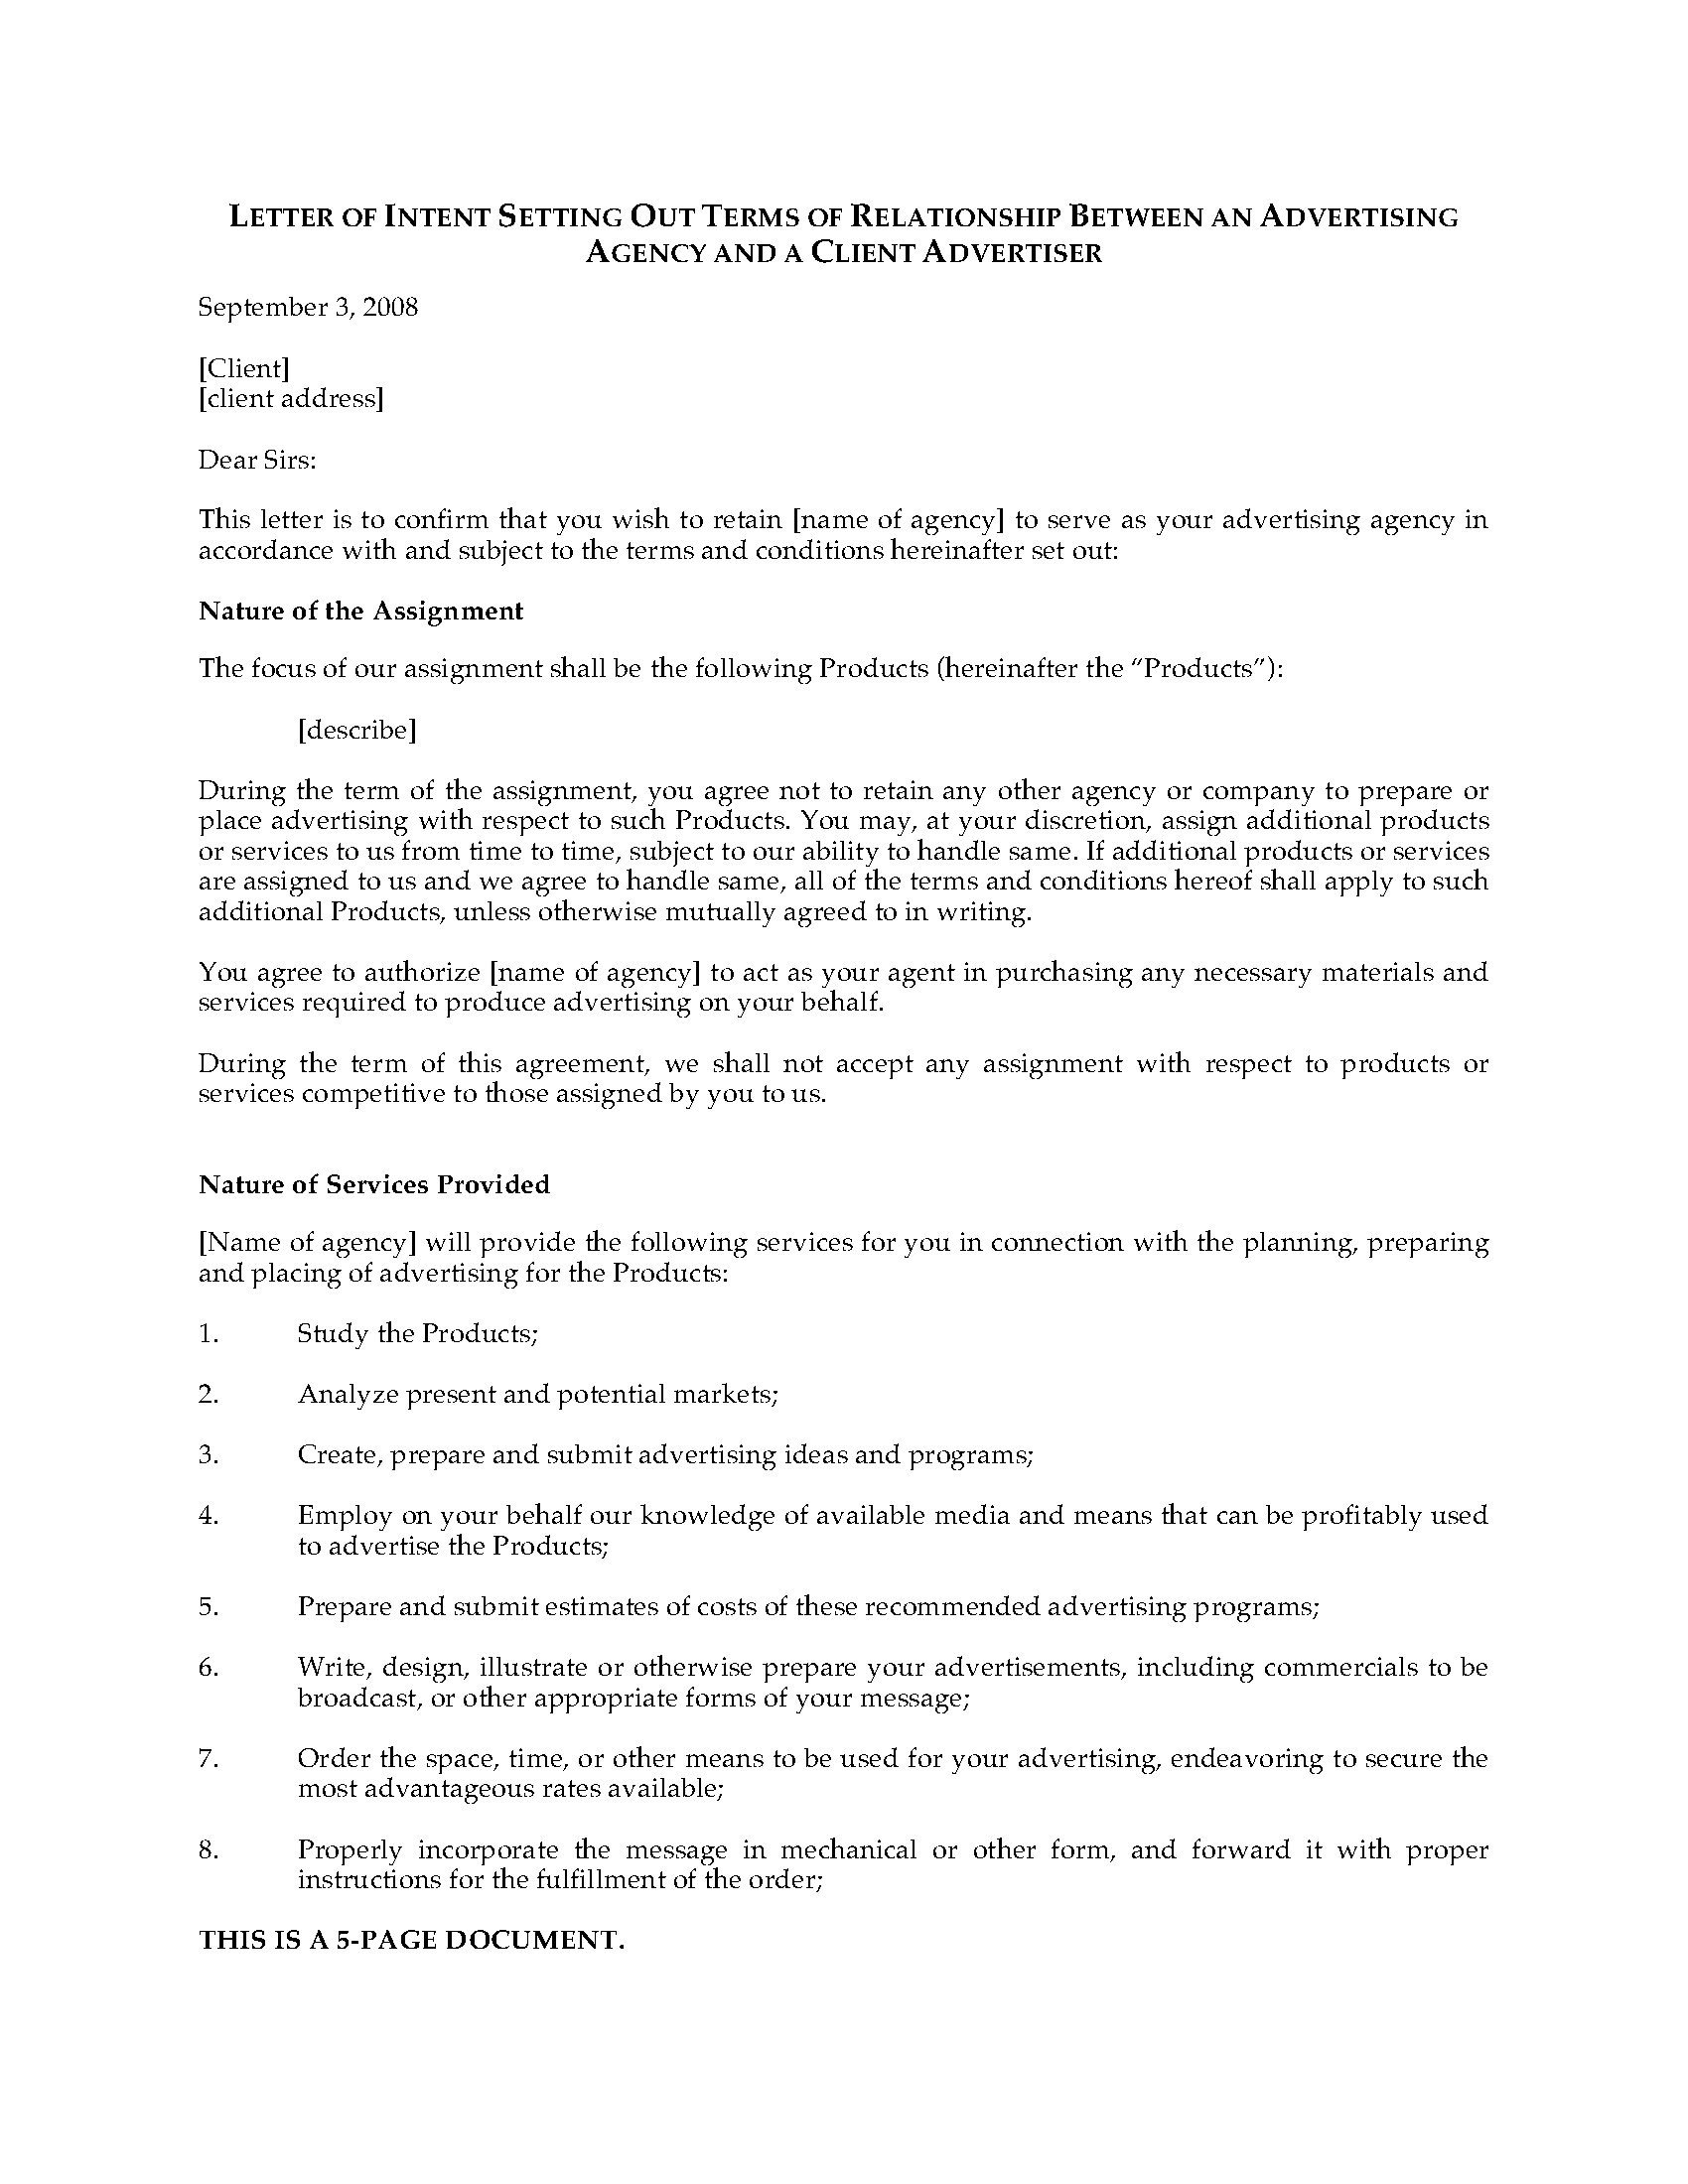 Intent to Hire Letter Letter Of Intent to Hire Advertising Agency